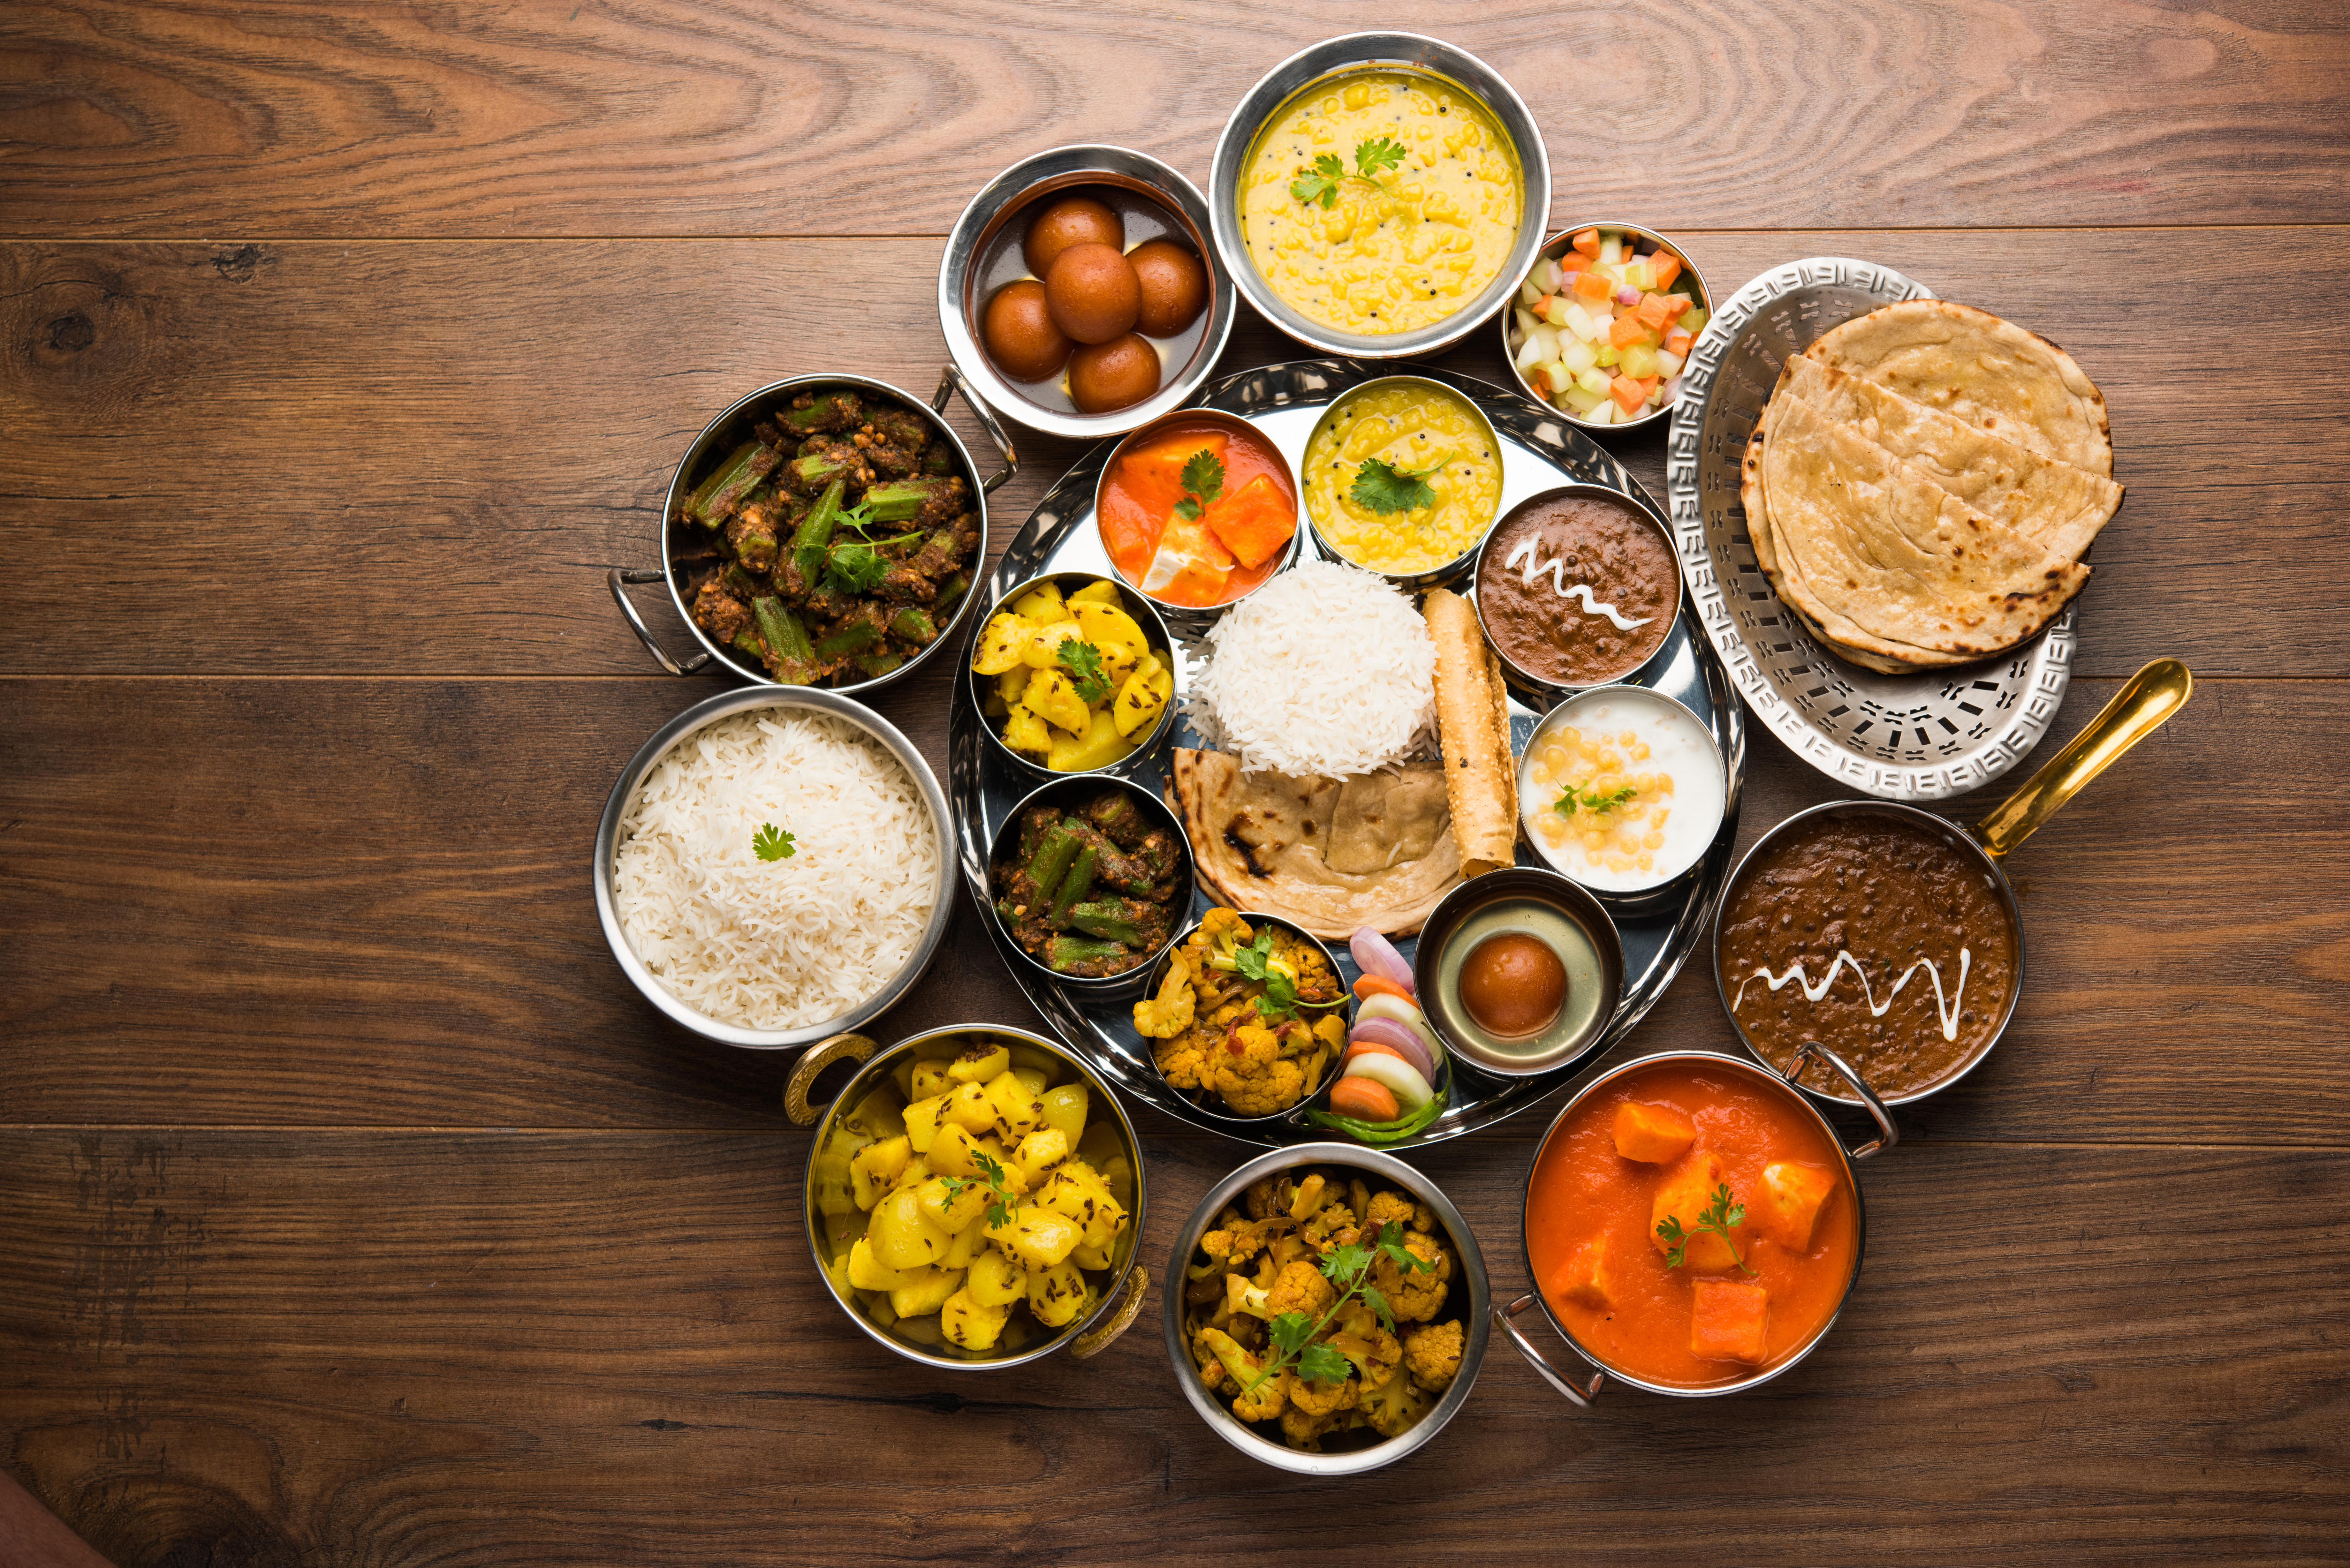 An Indian thali, an assortment of rice, flatbreads, and prepared dishes arranged on a table